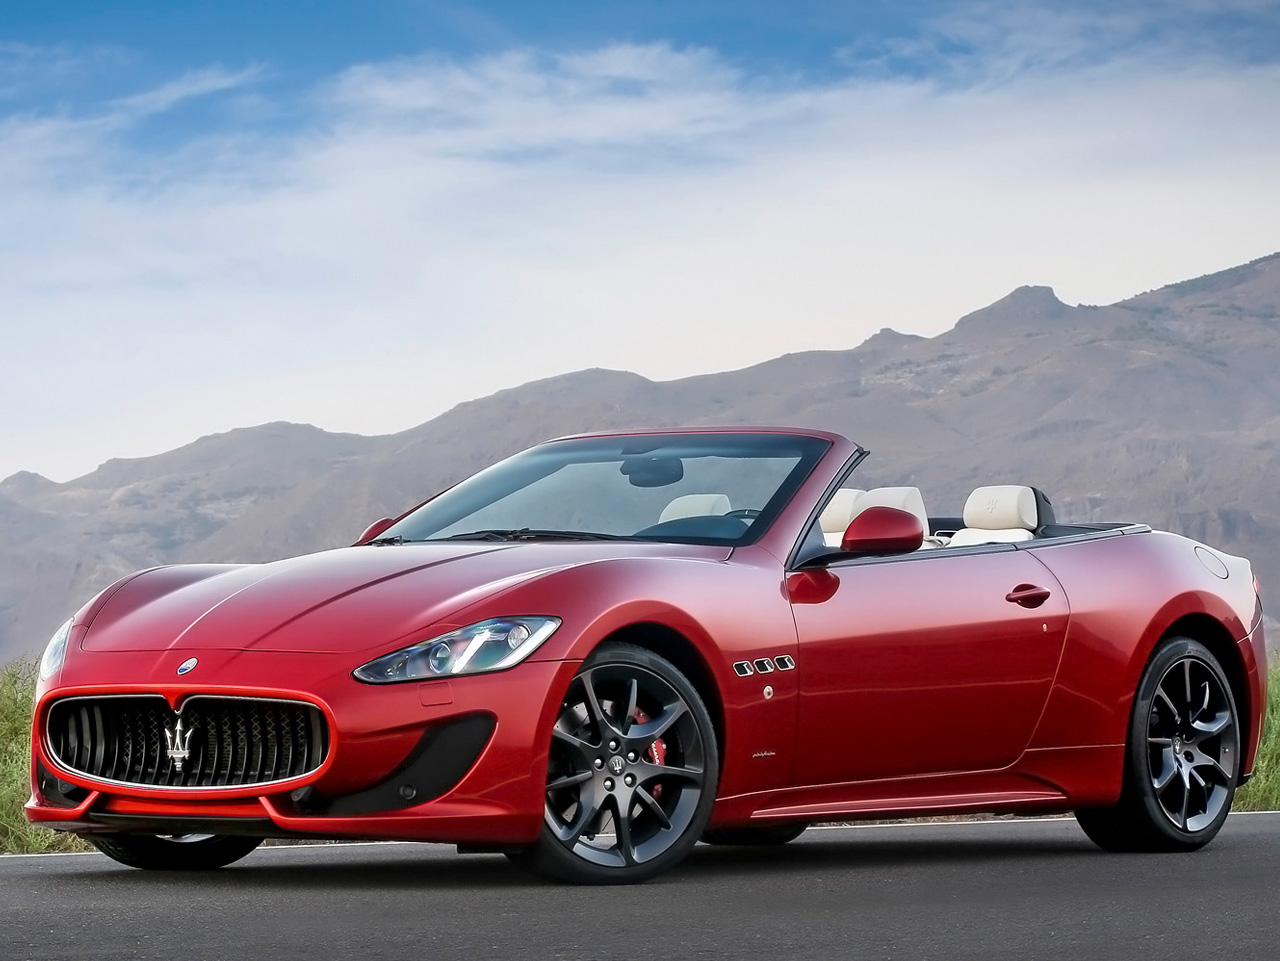 2013 maserati grancabrio sport cars info. Black Bedroom Furniture Sets. Home Design Ideas